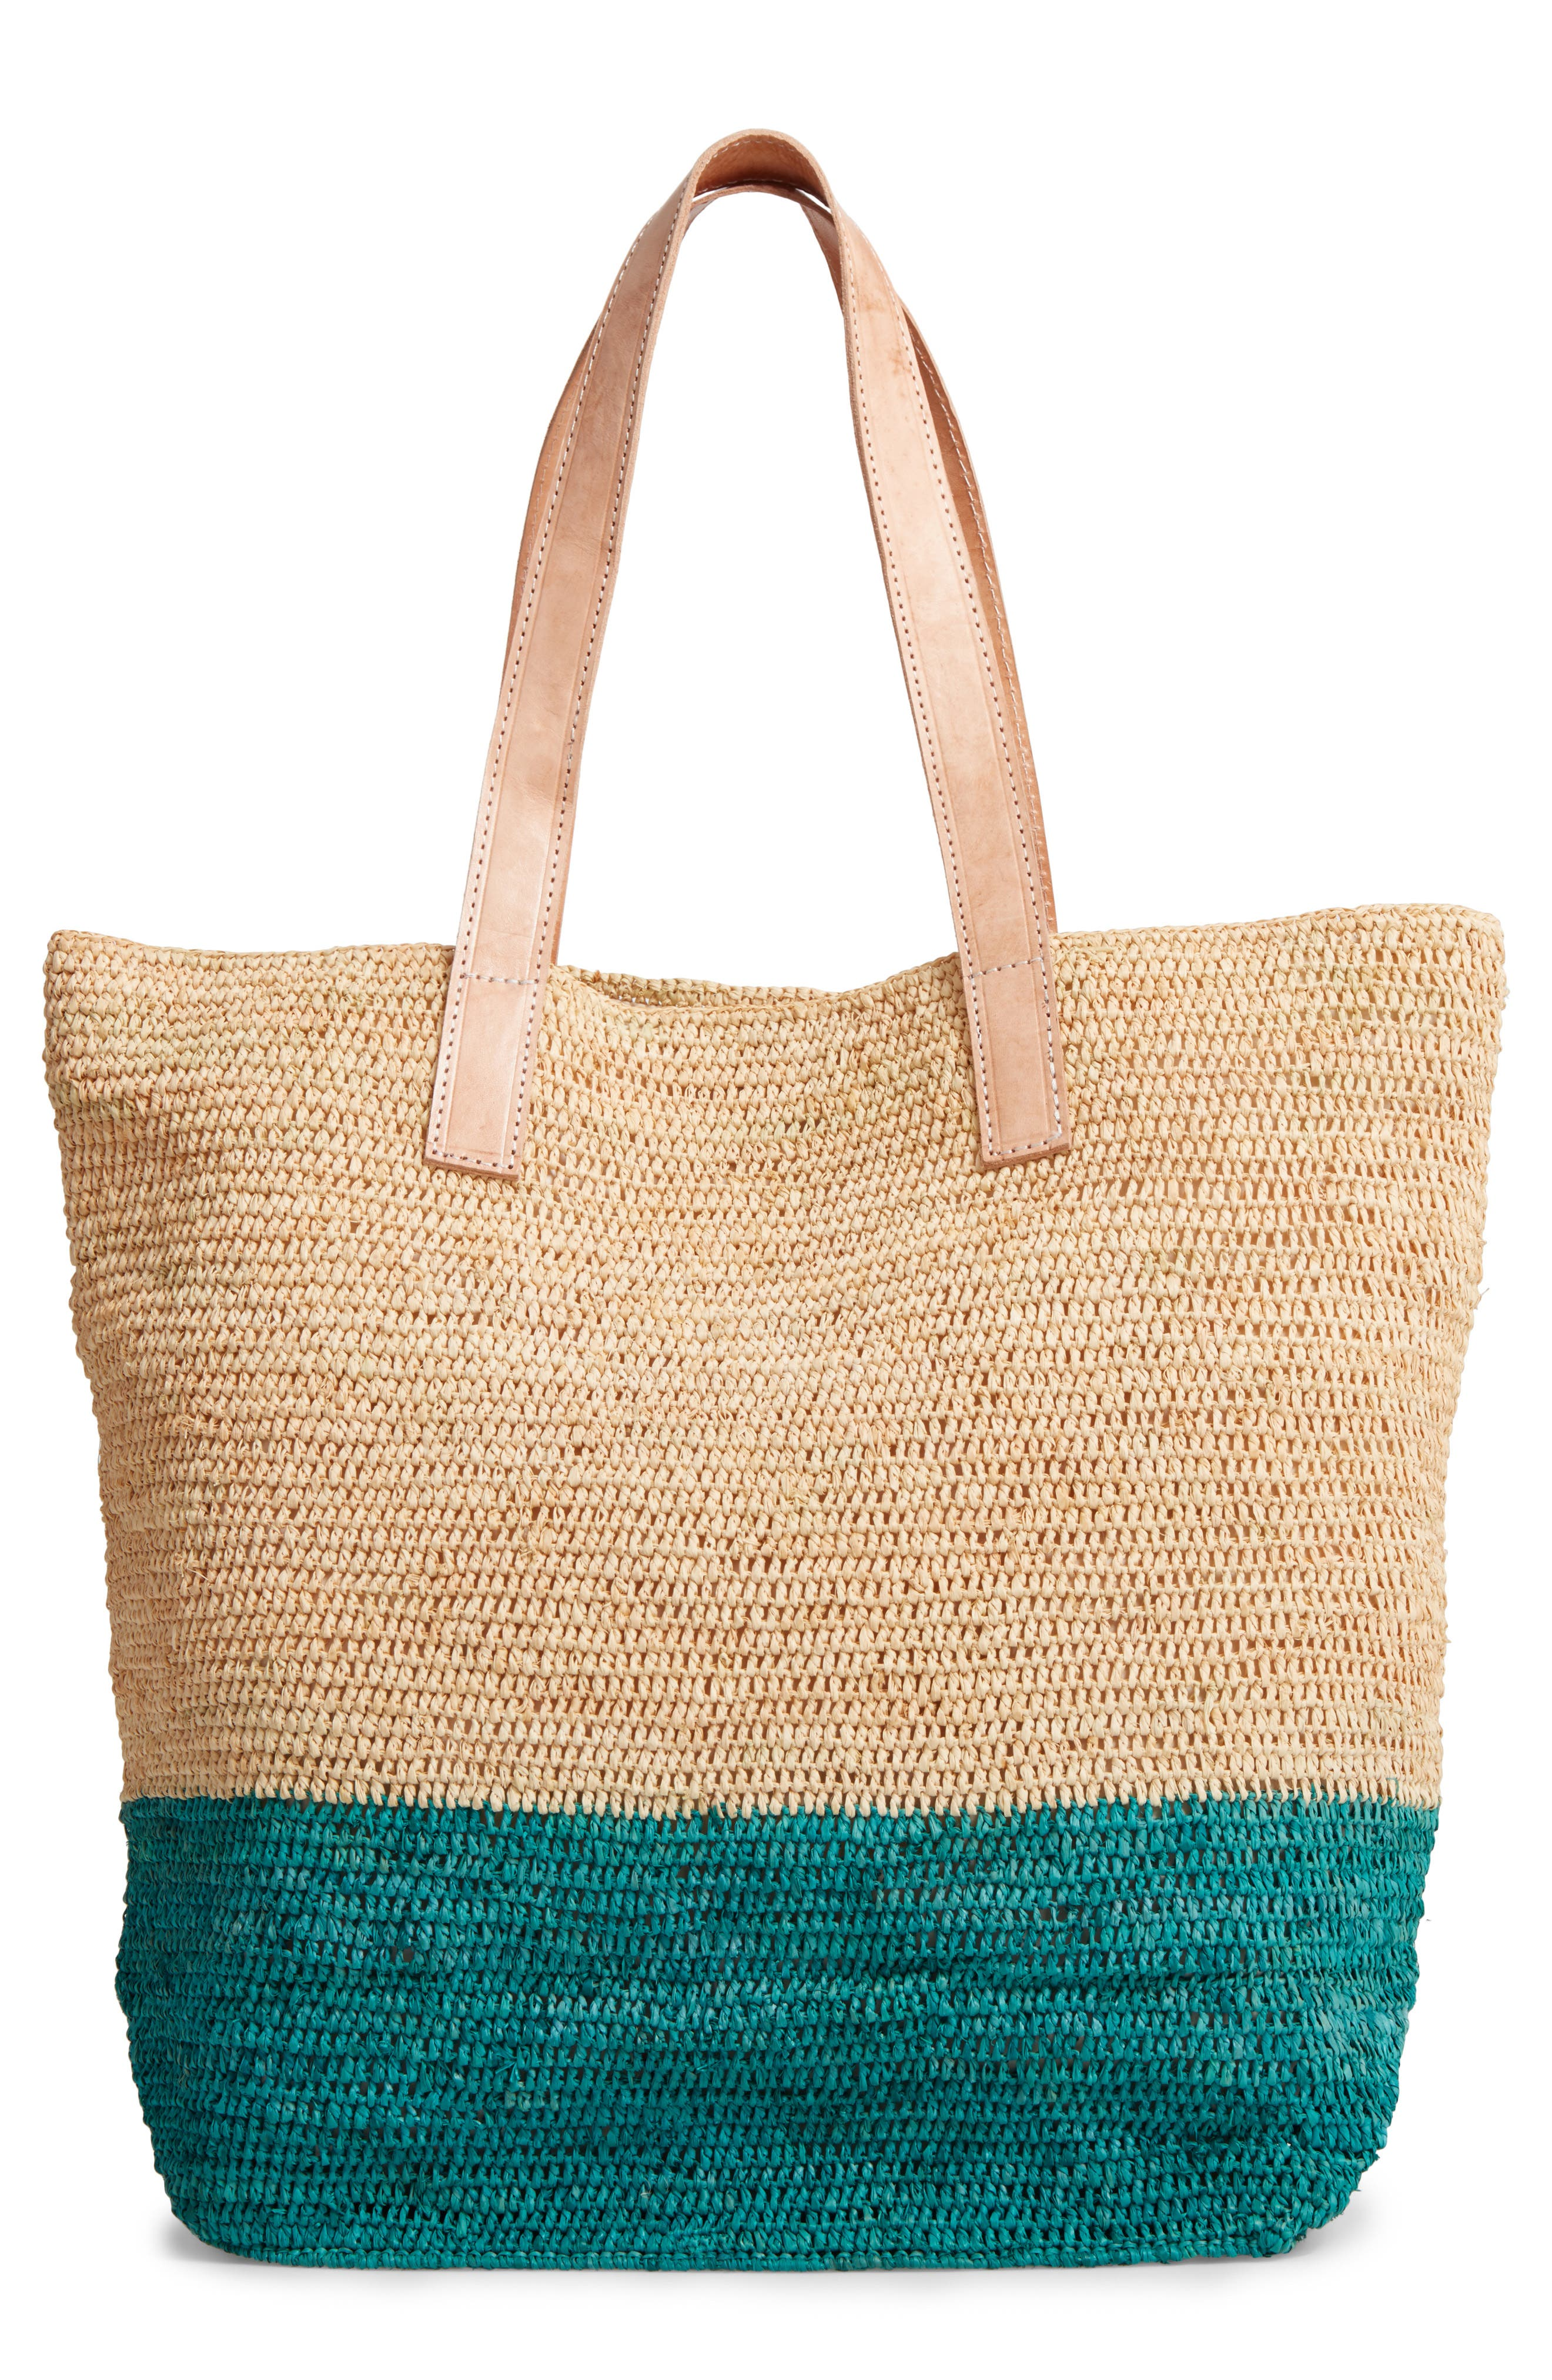 Montauk Woven Tote with Pom Charms,                         Main,                         color, 401